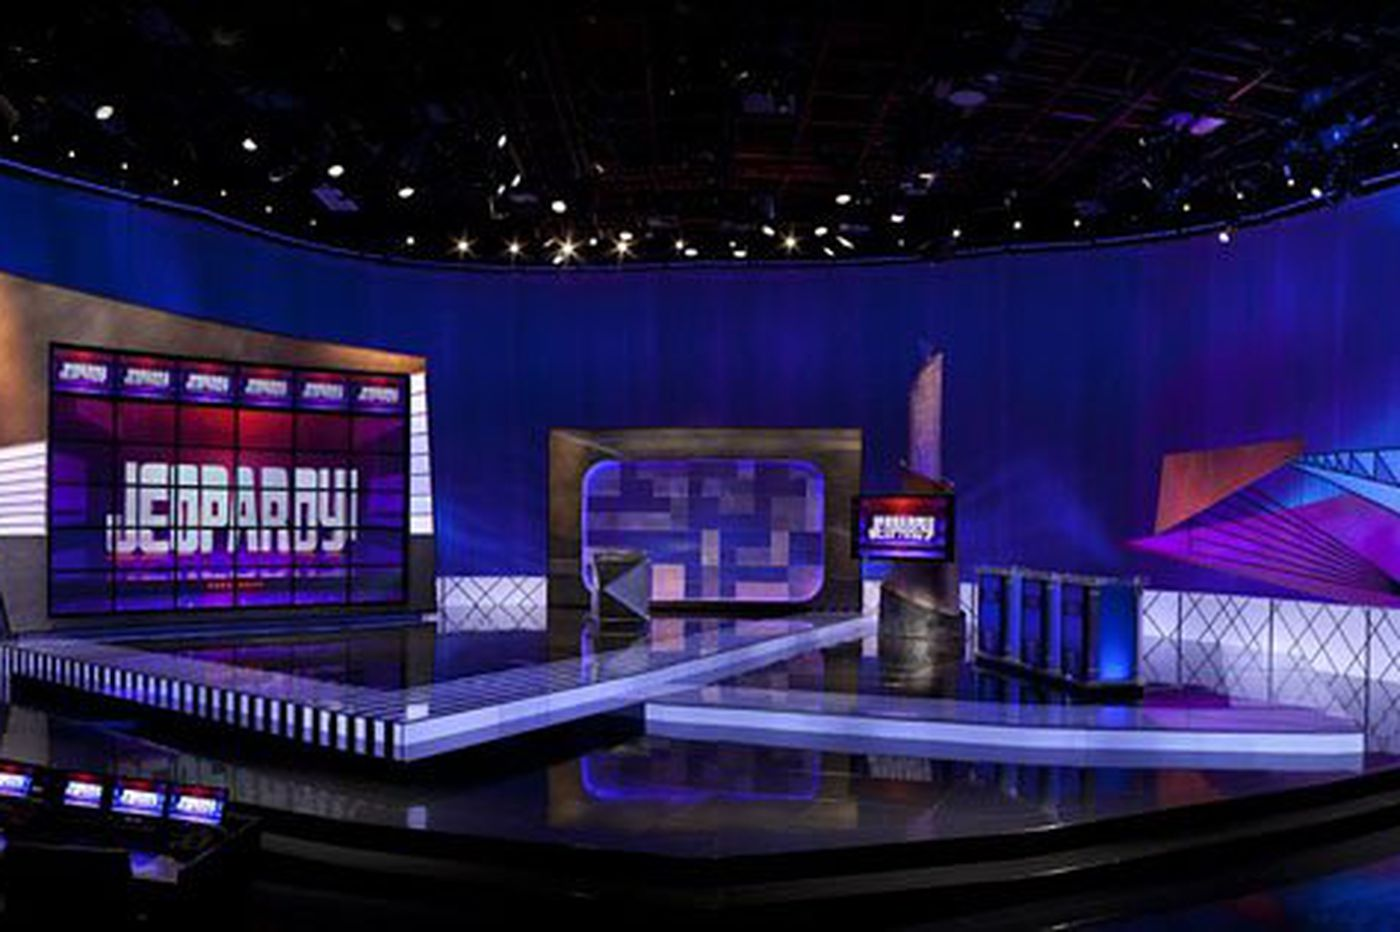 All-time 'Jeopardy!' champs to vie for share of $1.5 million